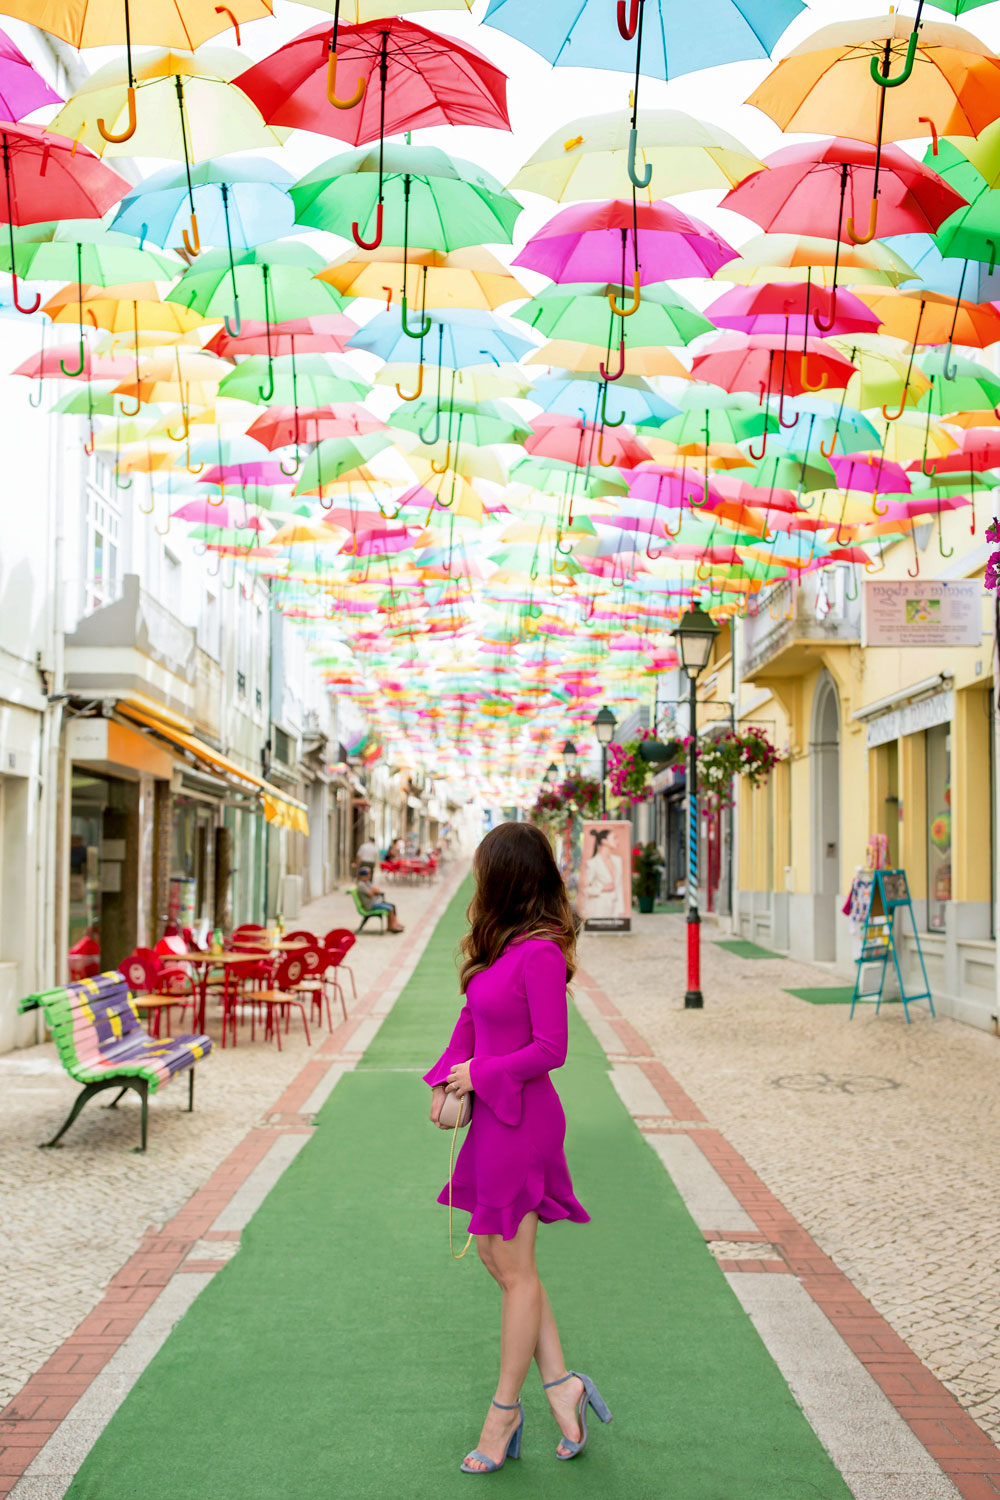 Umbrella Installation Agueda Portugal